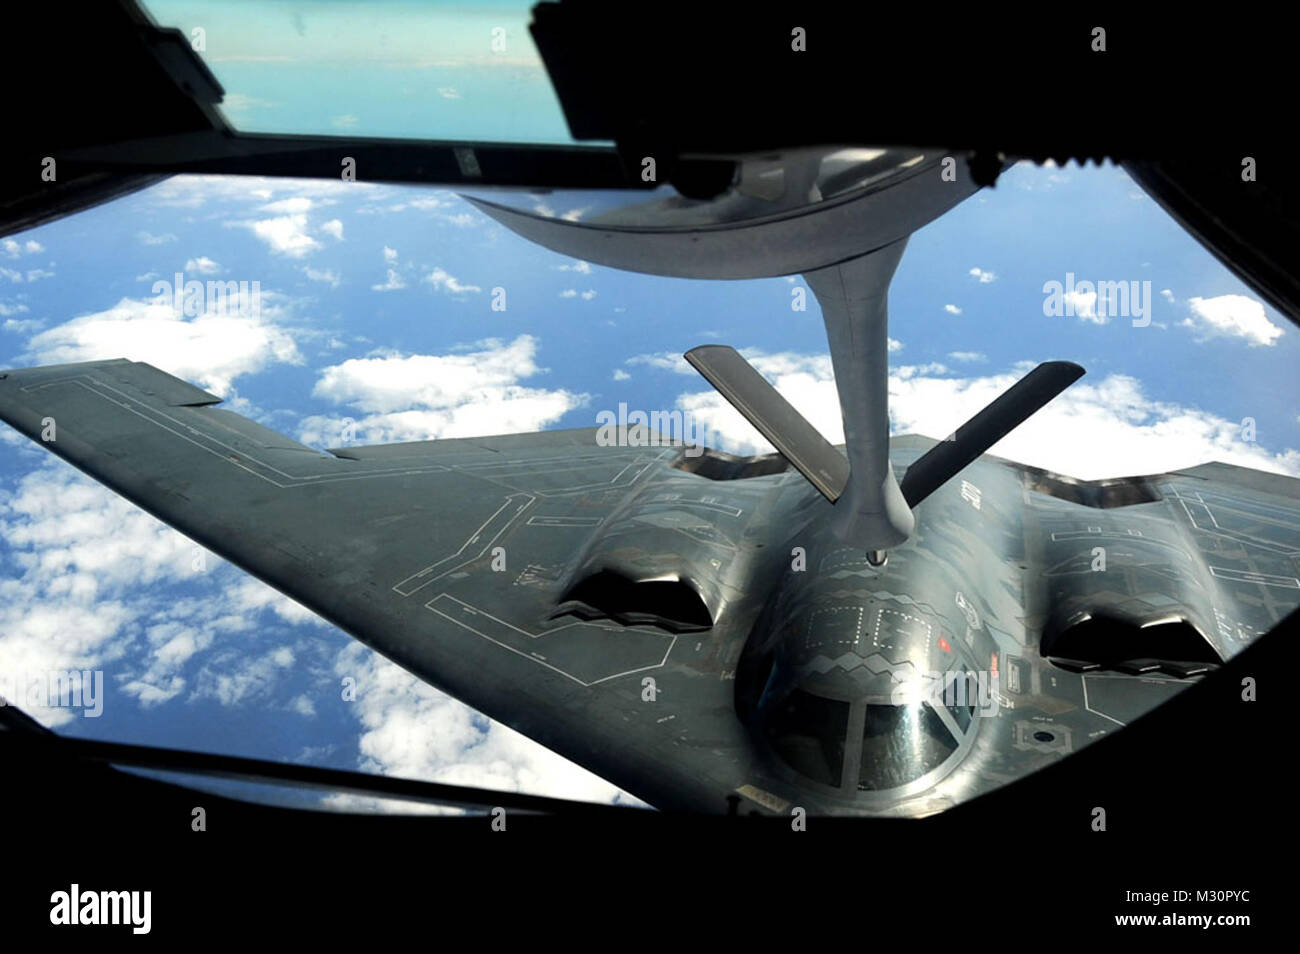 A U.S. Air Force B-2 Spirit Bomber from the 509th Bomb Wing, flies up to a KC-135 Stratotanker refueling aircraft - Stock Image